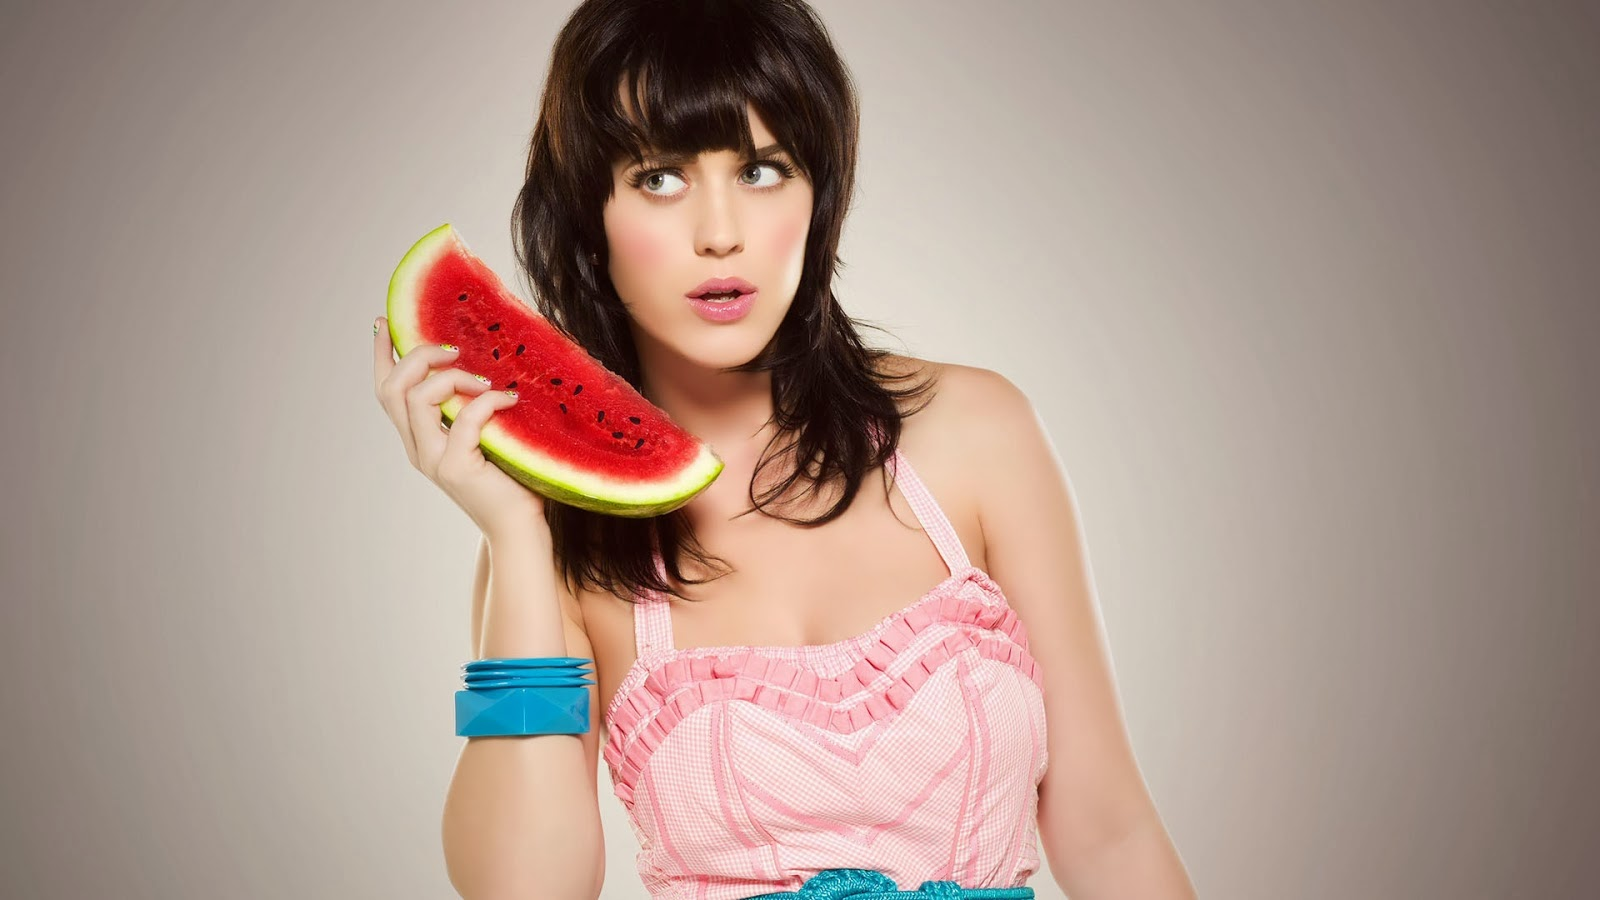 all hot informations download katy perry hd wallpapers 1080p